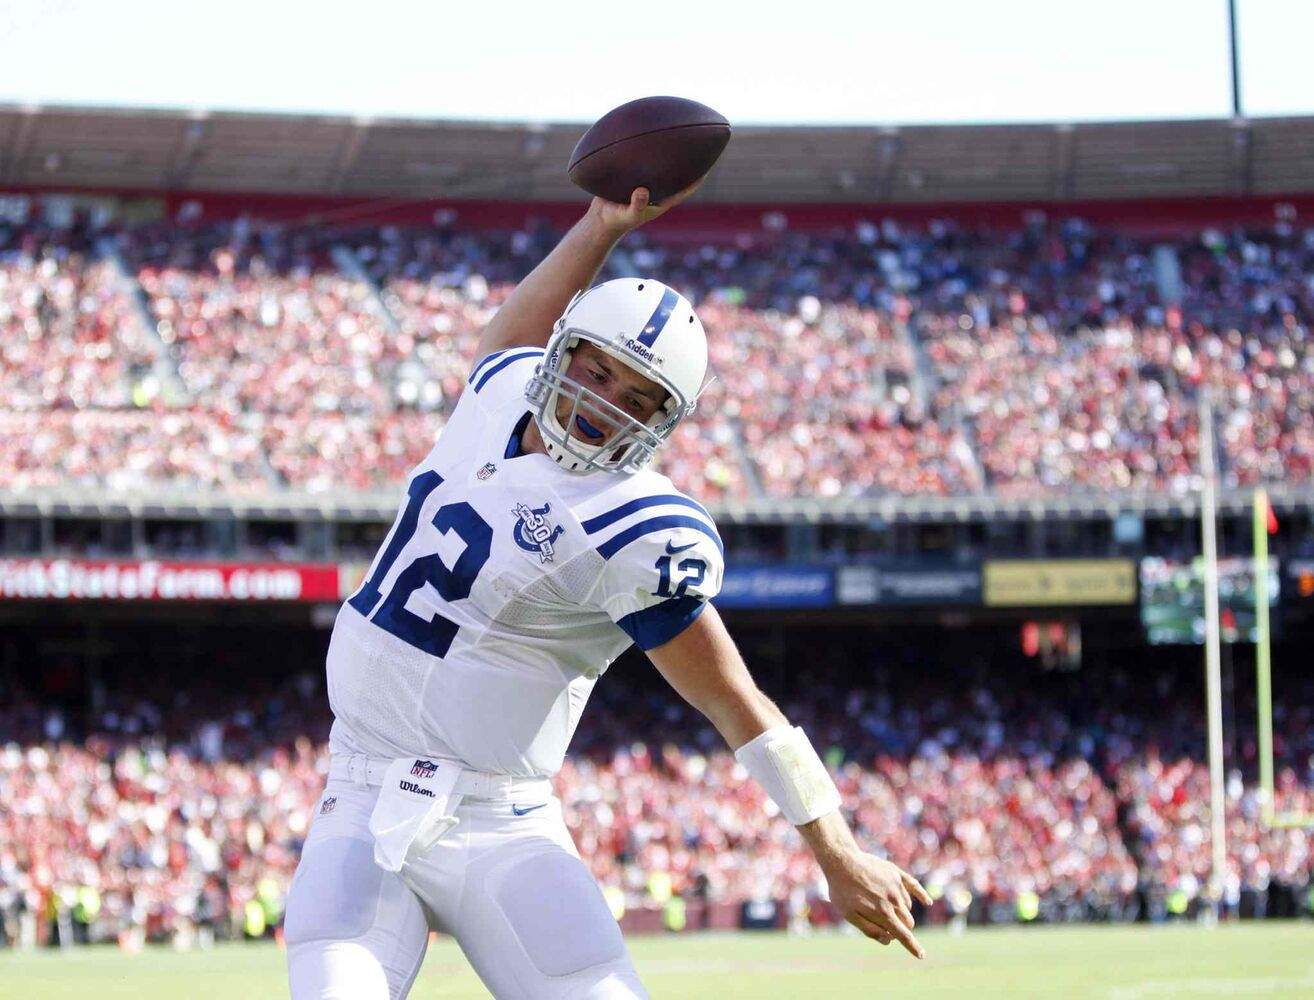 Indianapolis Colts quarterback Andrew Luck celebrates his touchdown in the fourth quarter against the San Francisco 49ers at Candlestick Park in September 2013. (Josie Lepe / Bay Area News Group / MCT files)